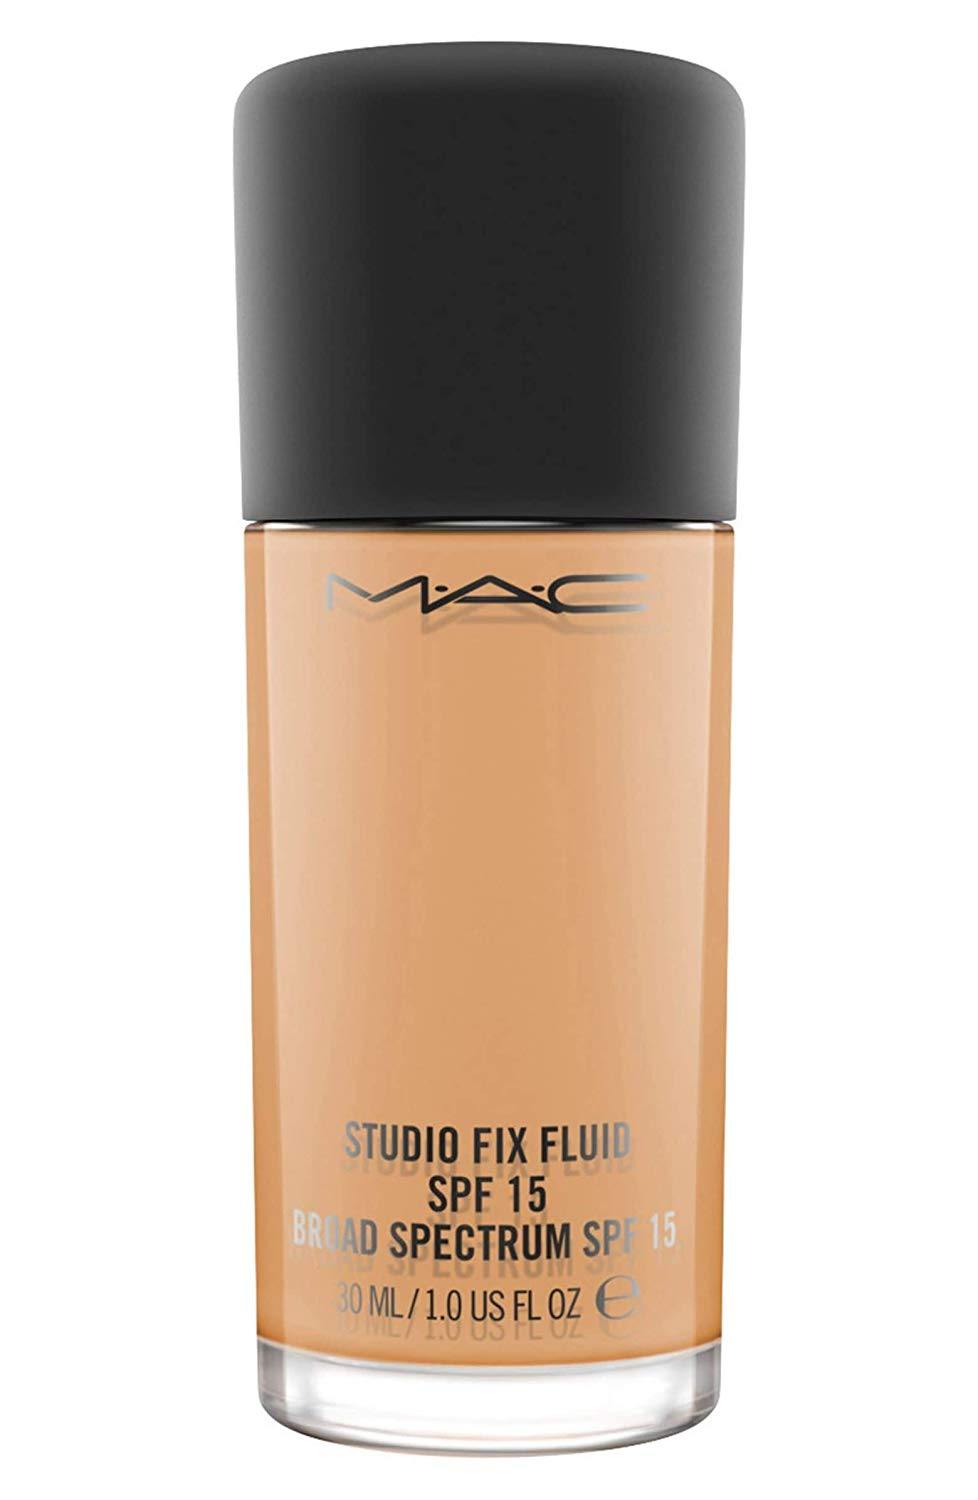 KGeGjox2XbAo2rtQlBVgArYr12aMiCOG uflfdRH6fWAnr632S93qr77RaNk 10 Best Foundations in India With Review & Buying Guide [month] [year]